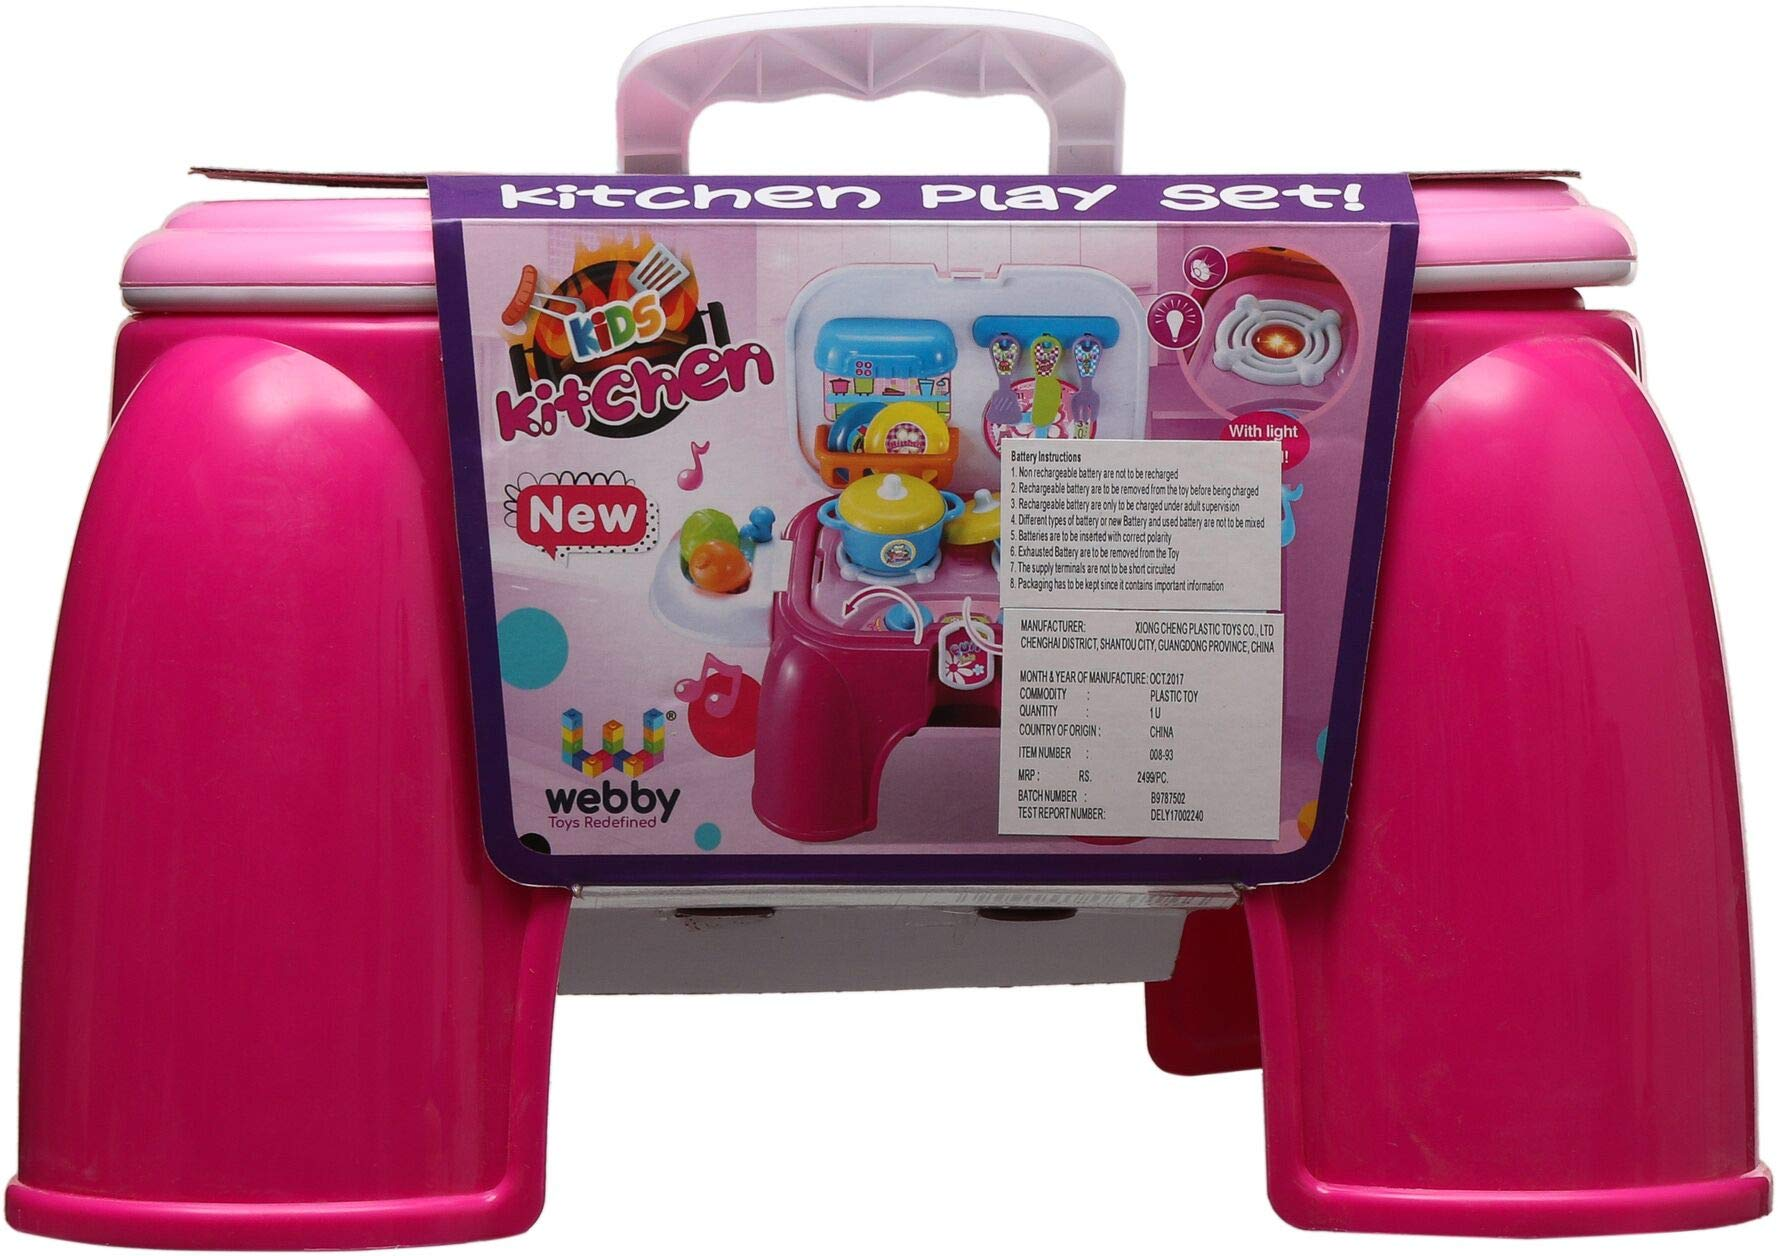 Xiong Cheng Kids Kitchen Pretend Play Battery Operated Toy Set Multi Color Buy Online In Mongolia At Desertcart